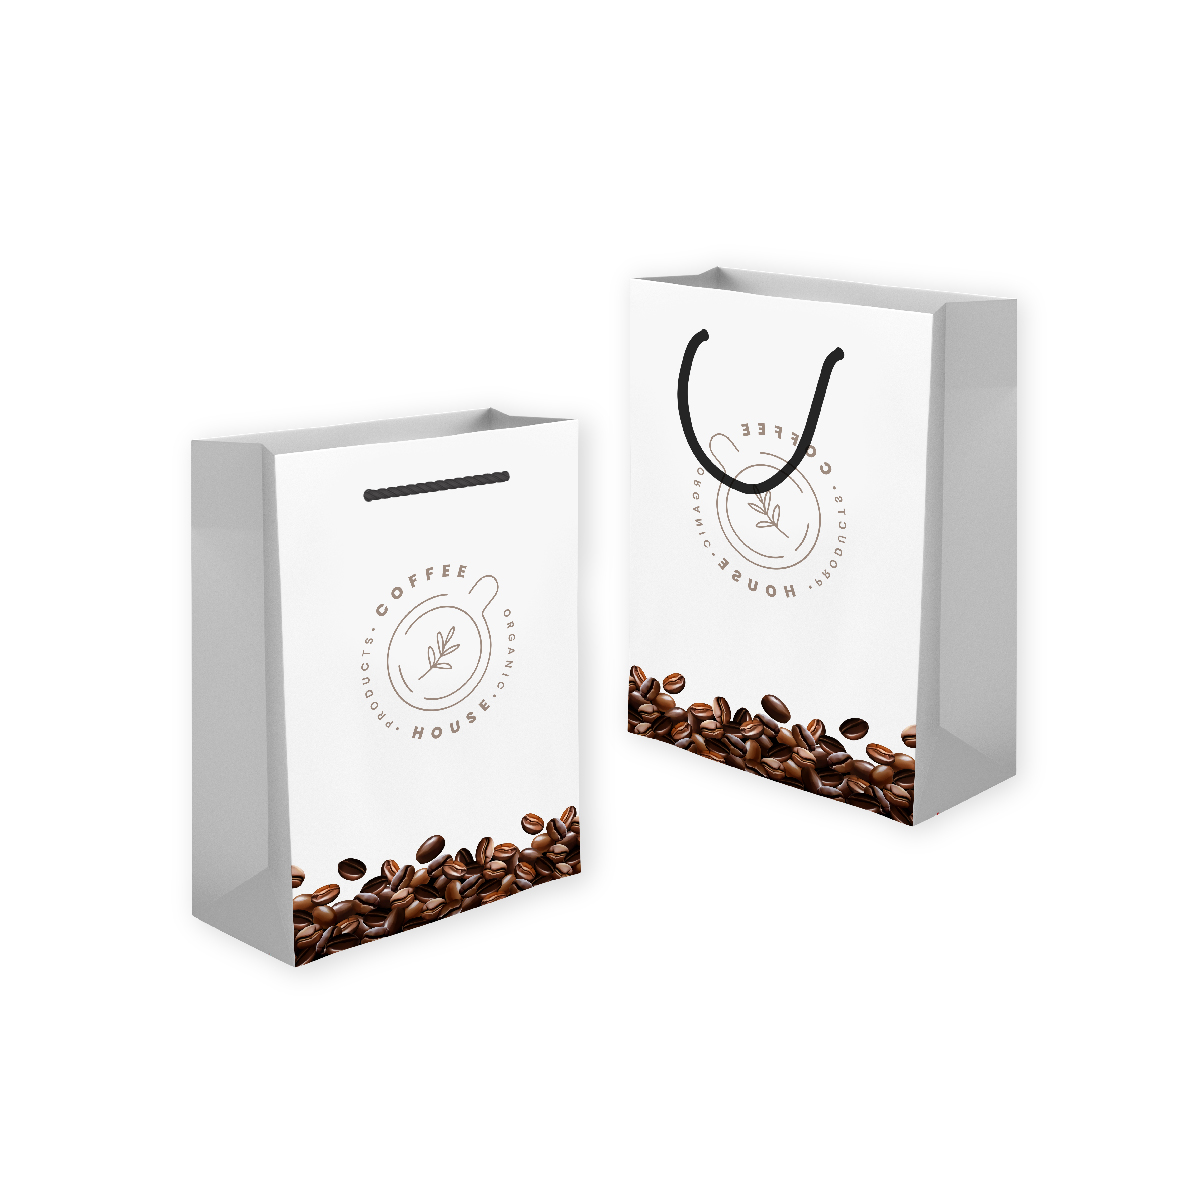 Uncoated Paper Bags